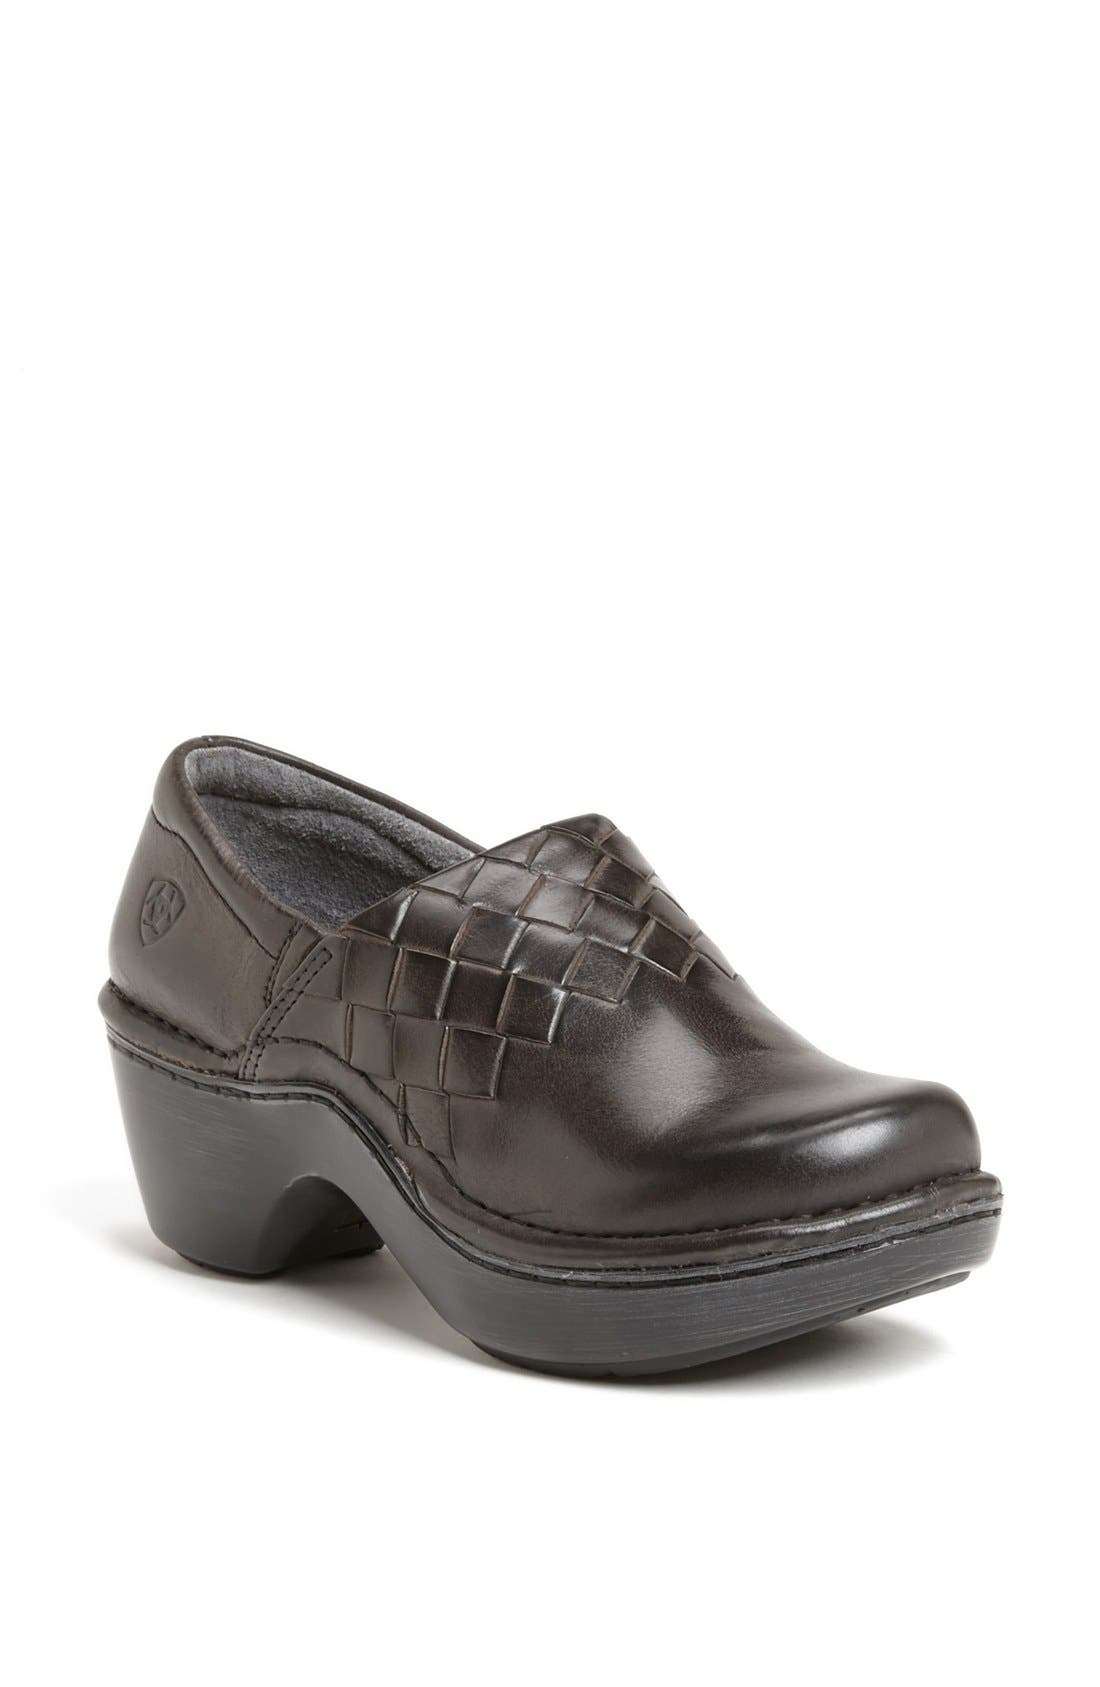 Alternate Image 1 Selected - Ariat 'Ashbourne' Woven Leather Clog